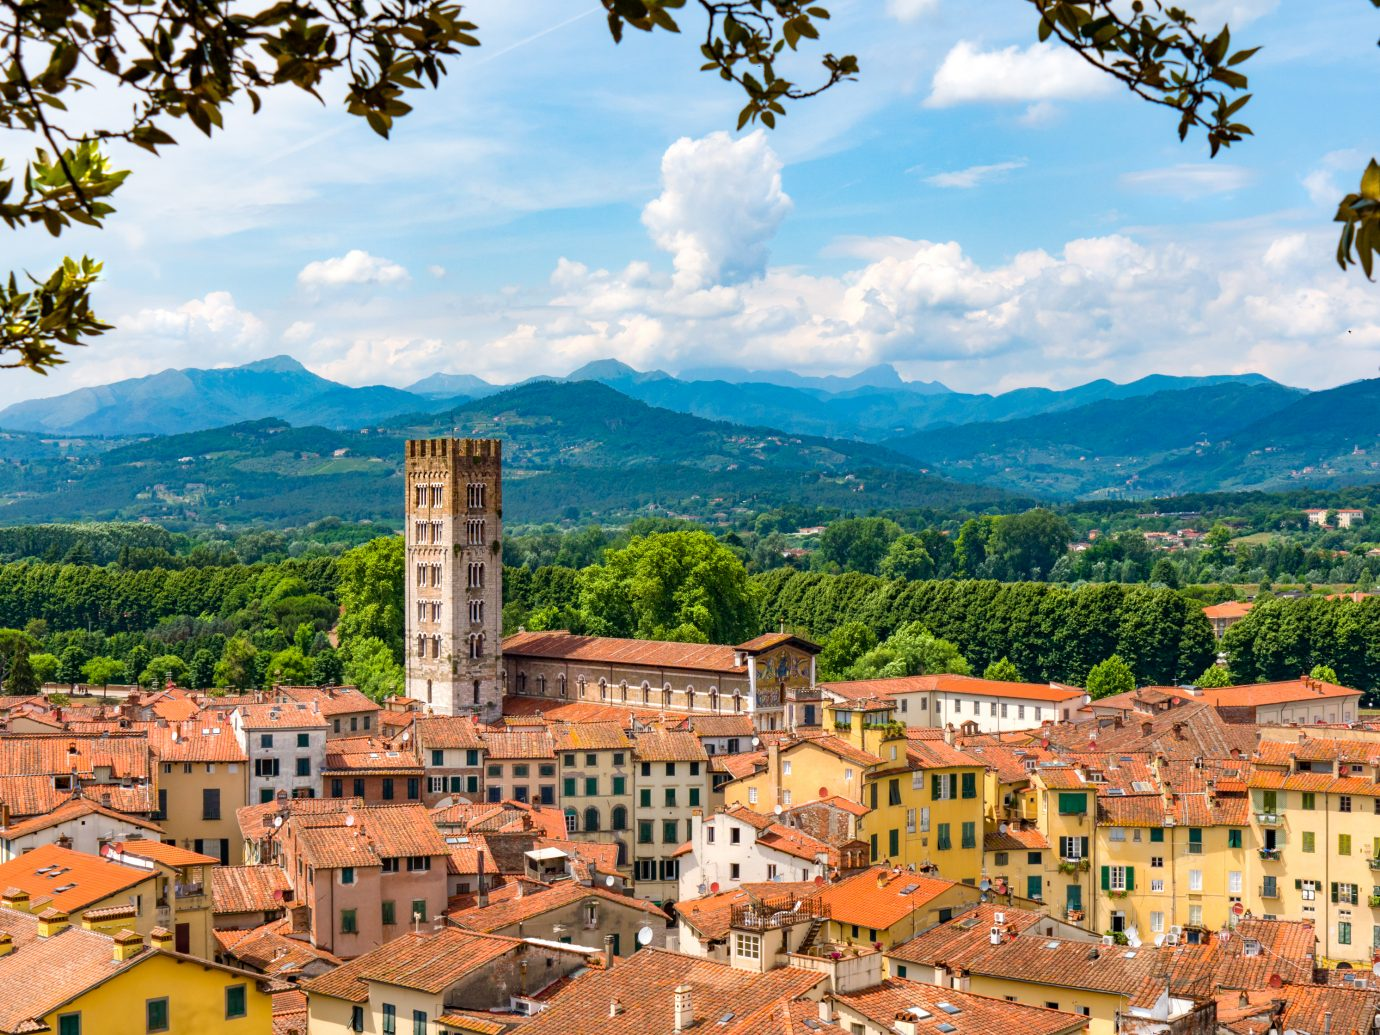 A view of the rooftops of the quaint Tuscan town of Lucca, Italy with mountain landscape in the background